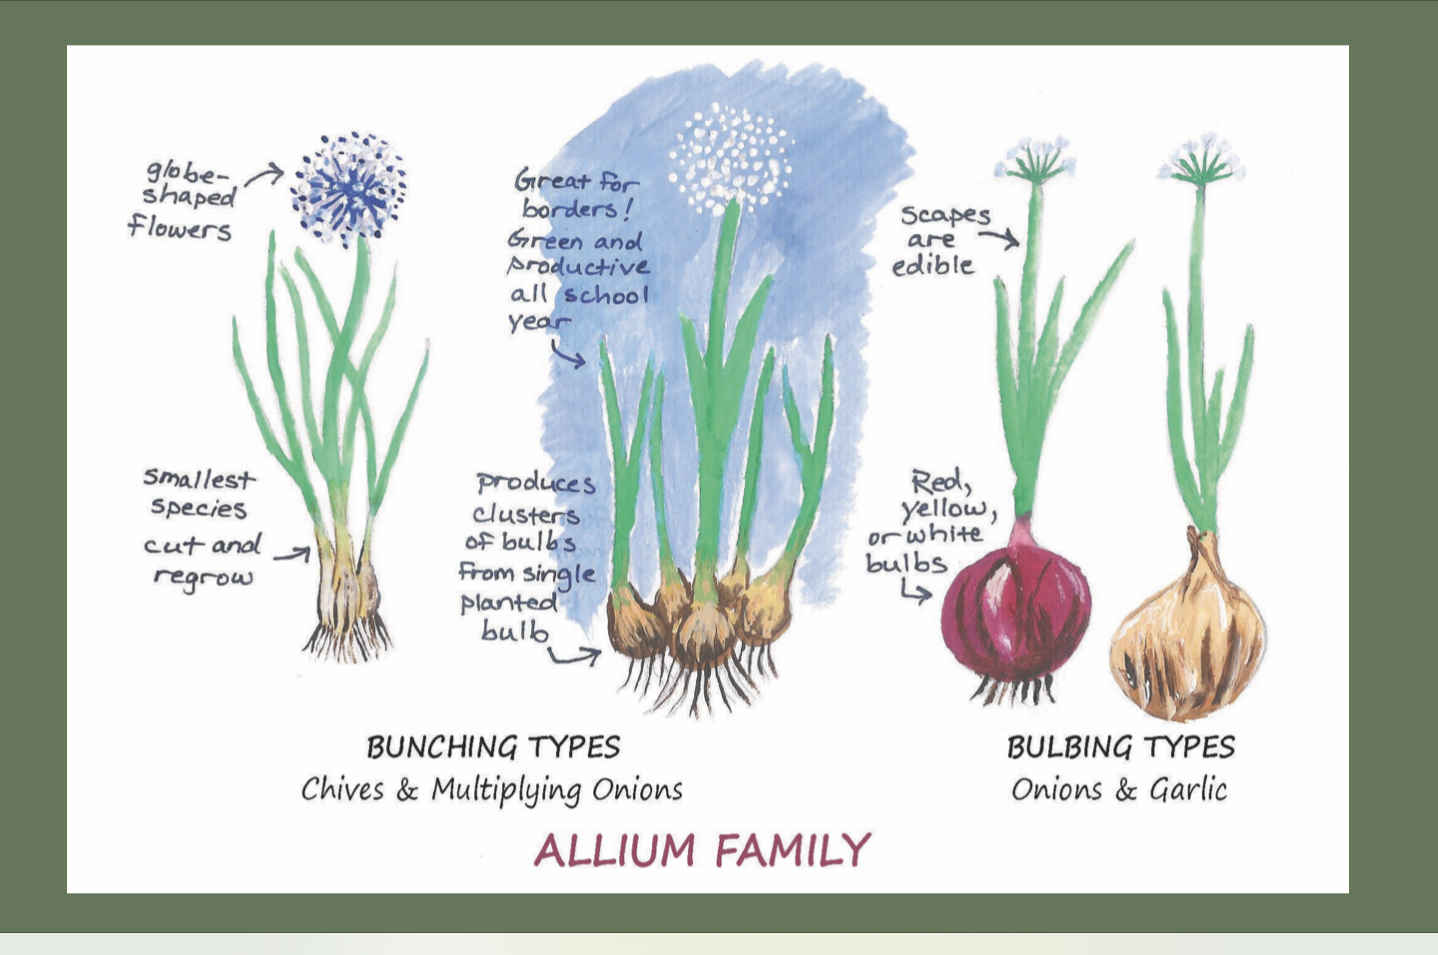 Tips for Growing Onions and Garlic image